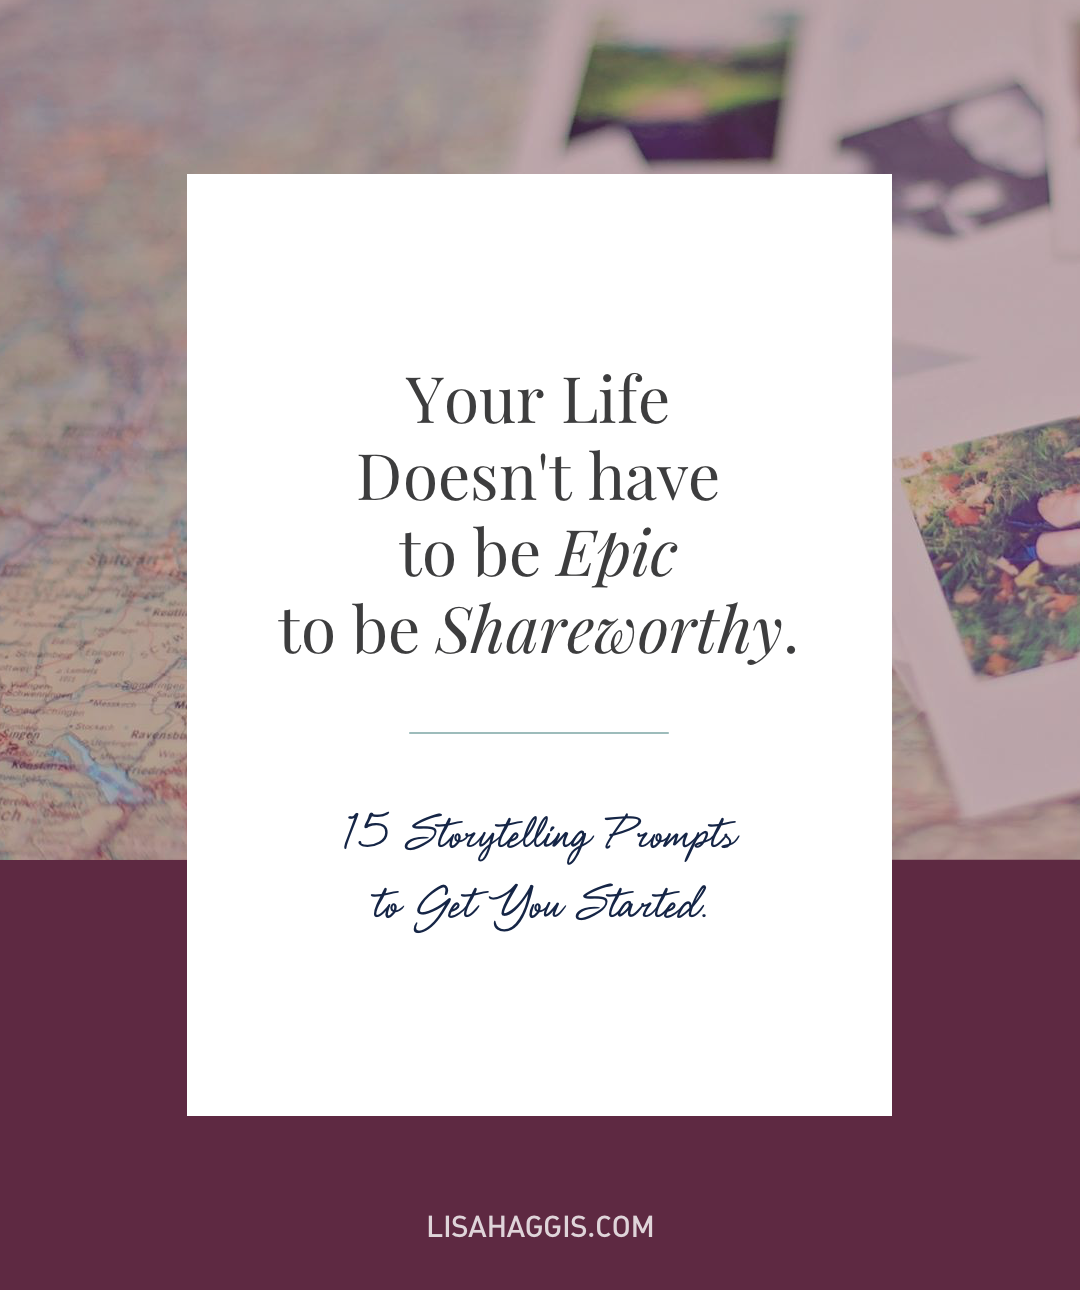 Have a story to tell? Of course you do! Here are 15 prompts to inspire you.